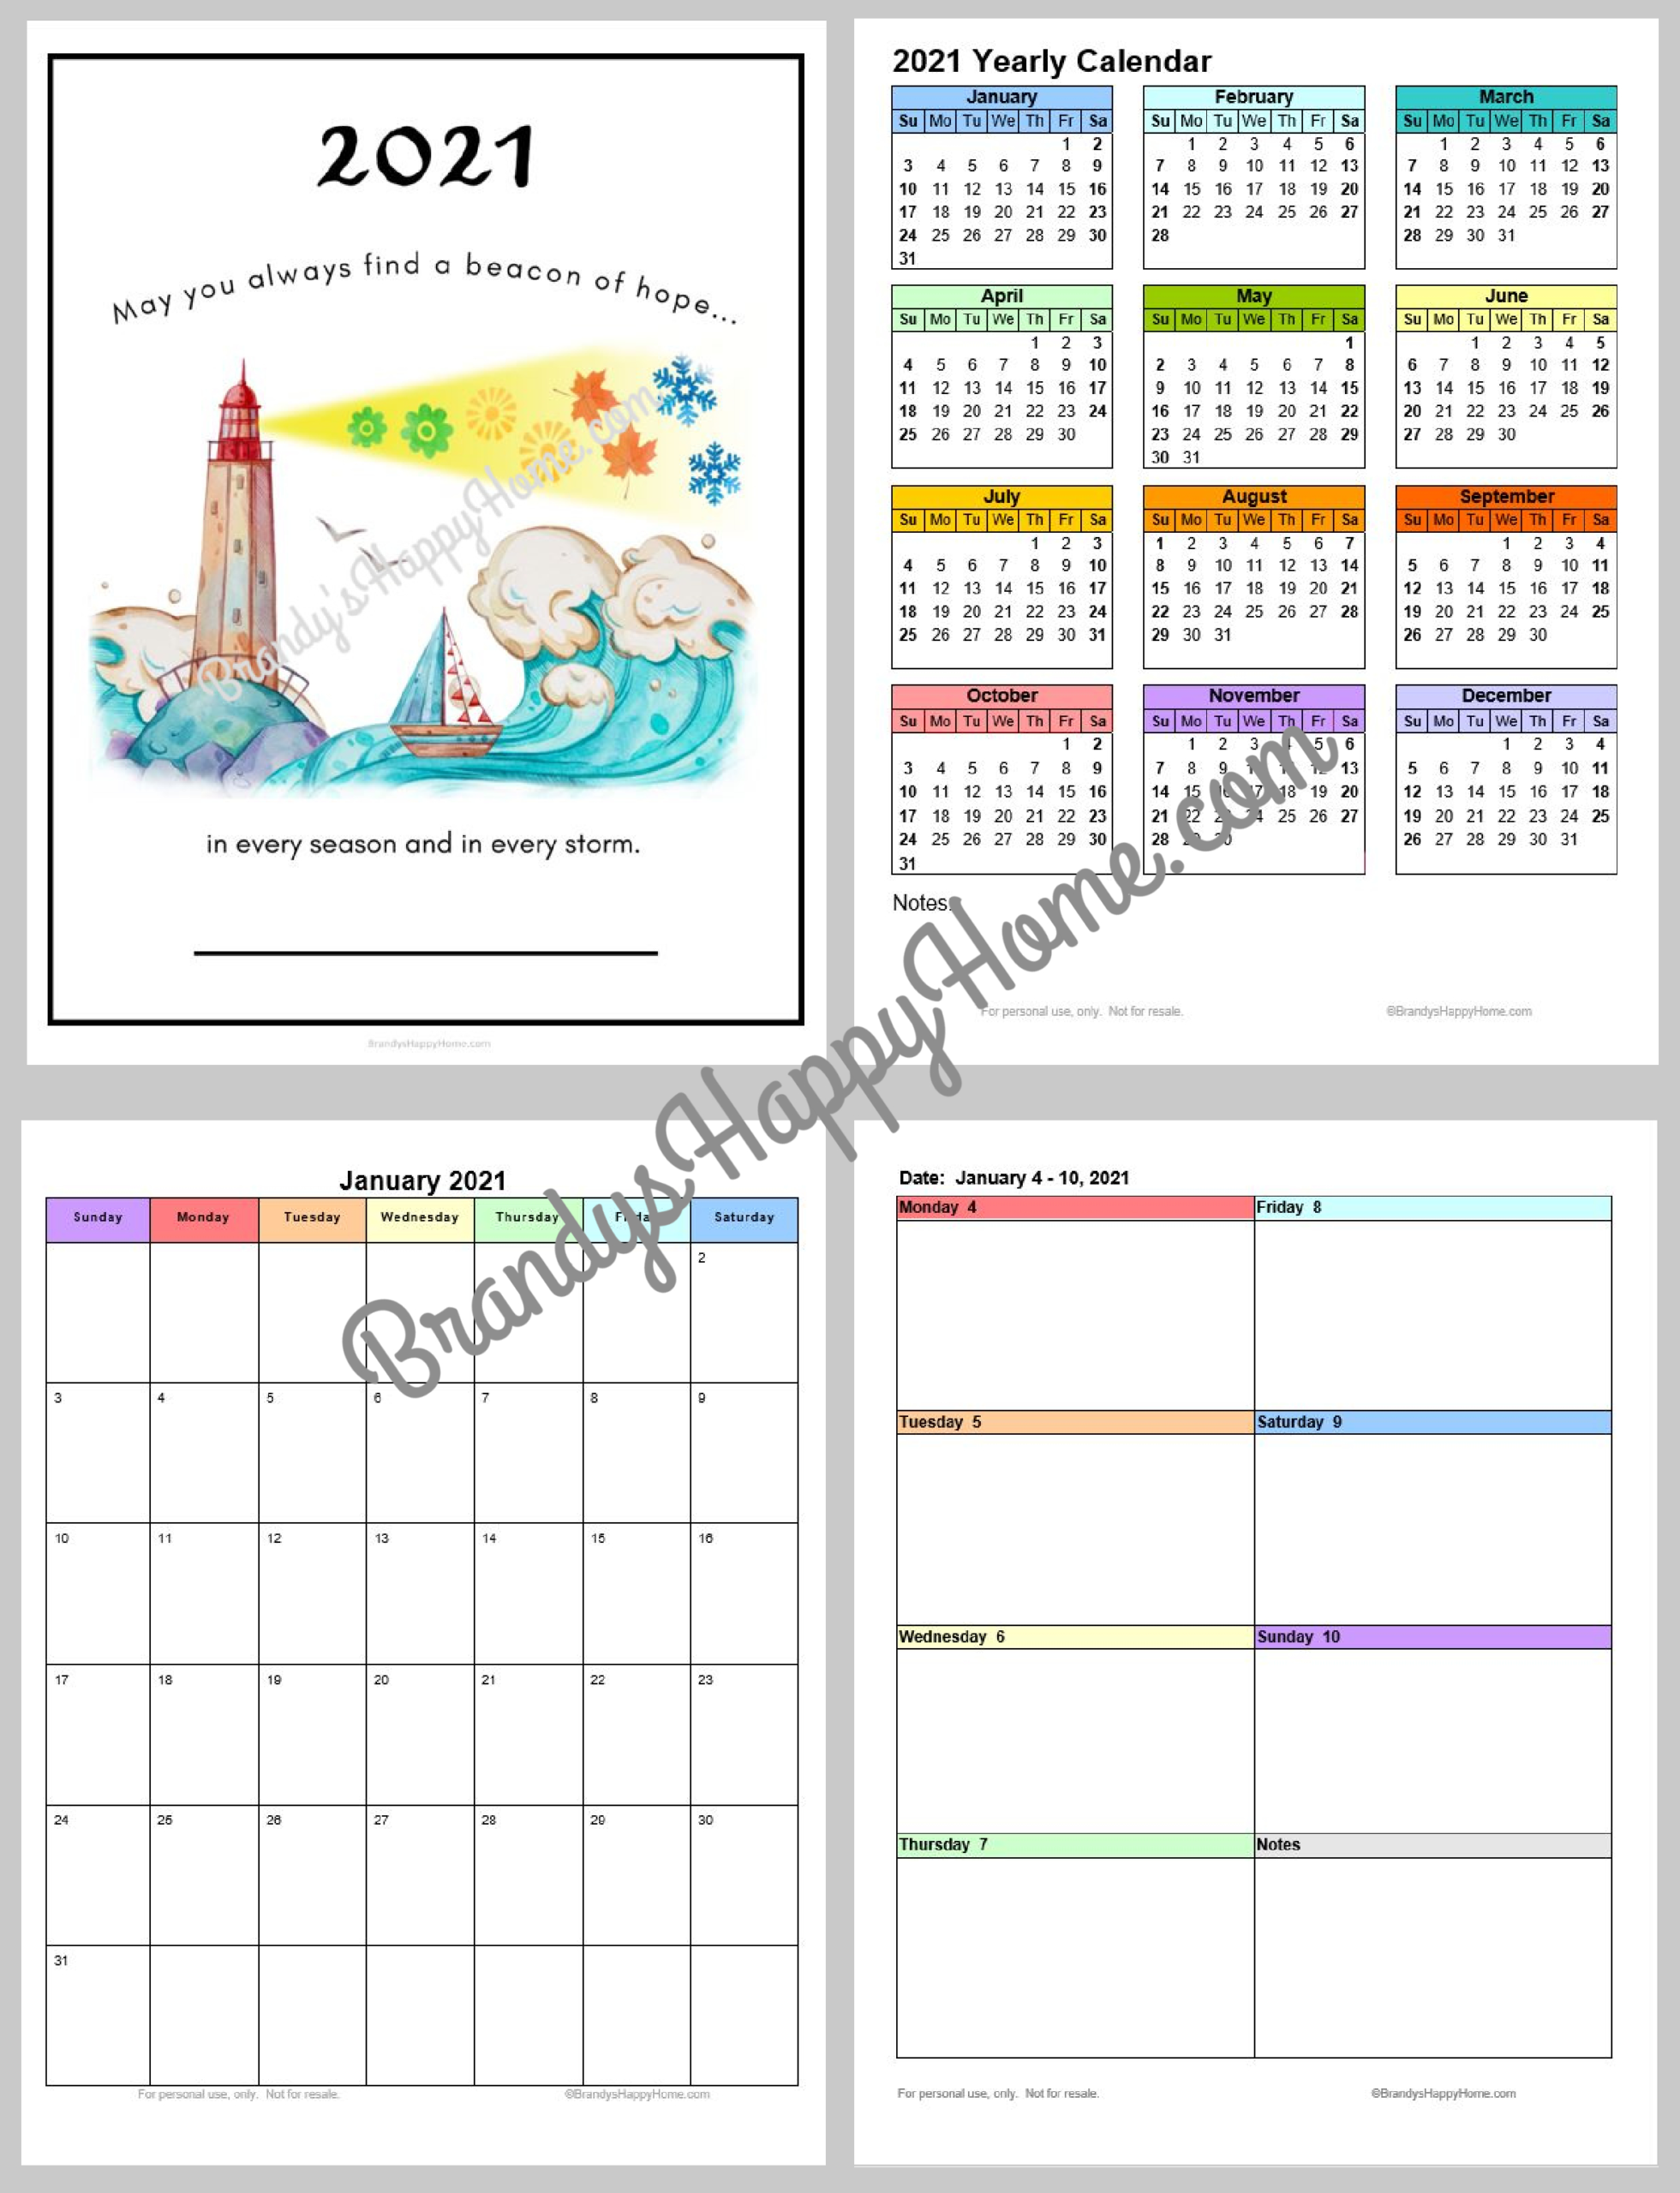 Free 2021 Calendar Planner Printables intended for 2021-2021 Monthly Two Year Planner: